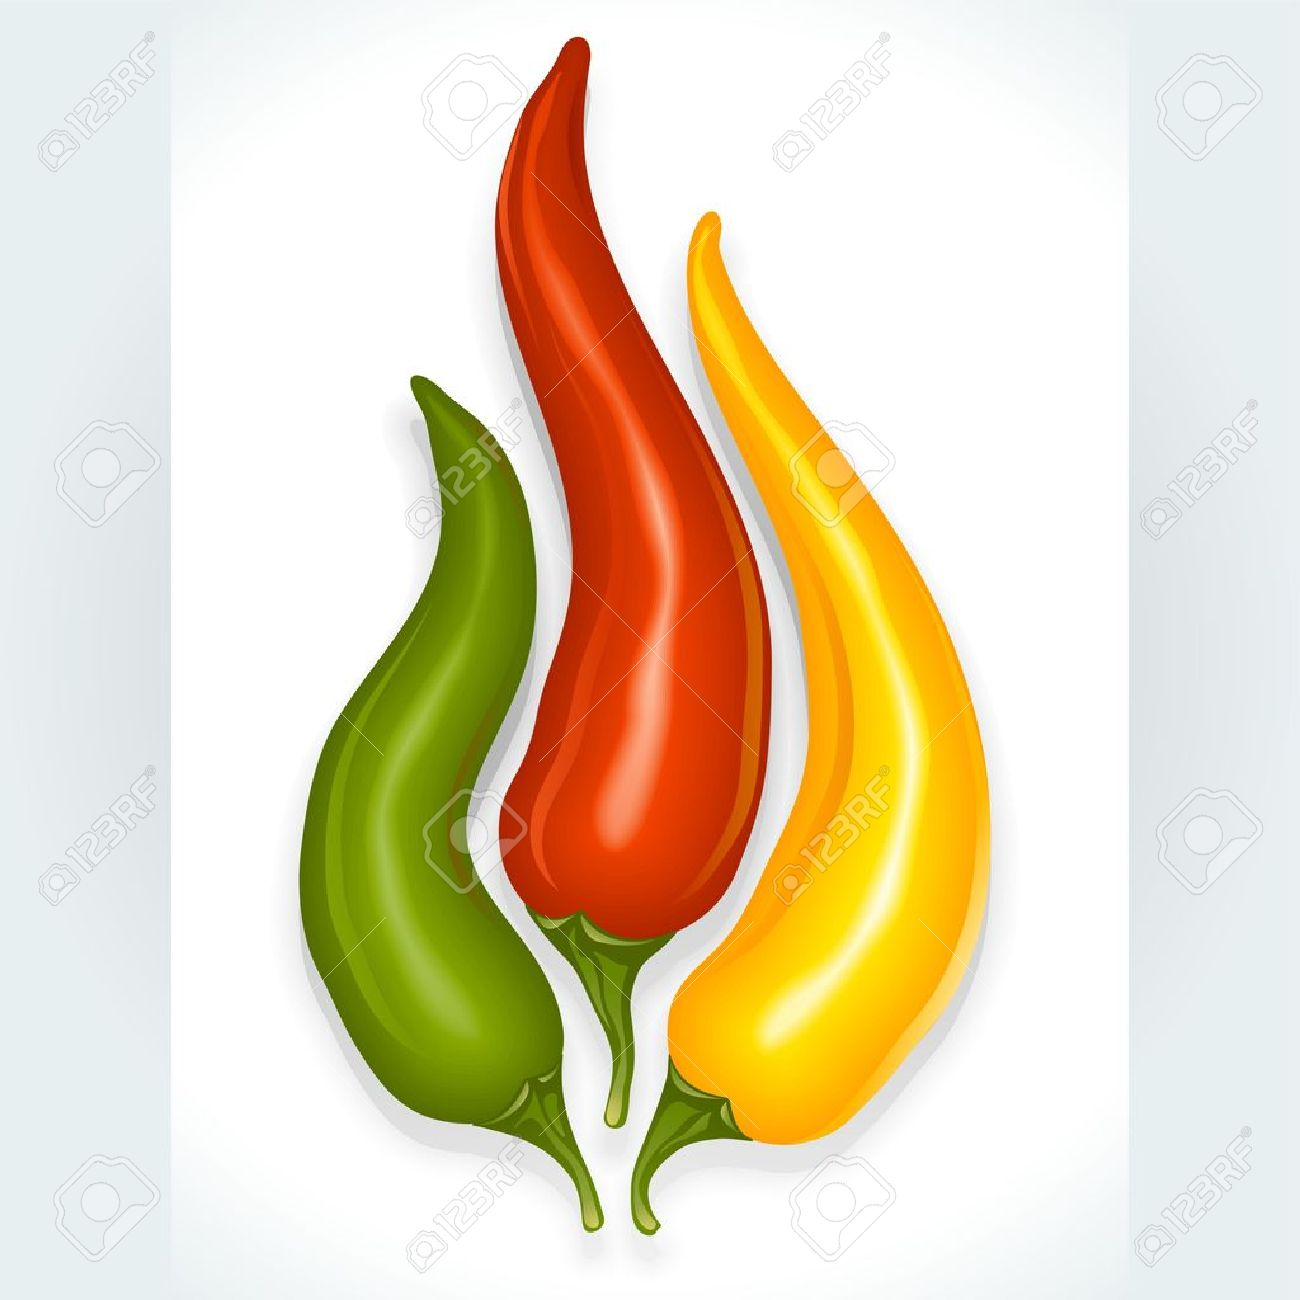 Hot chili pepper in the shape of fire sign isolated on white background - 11172799